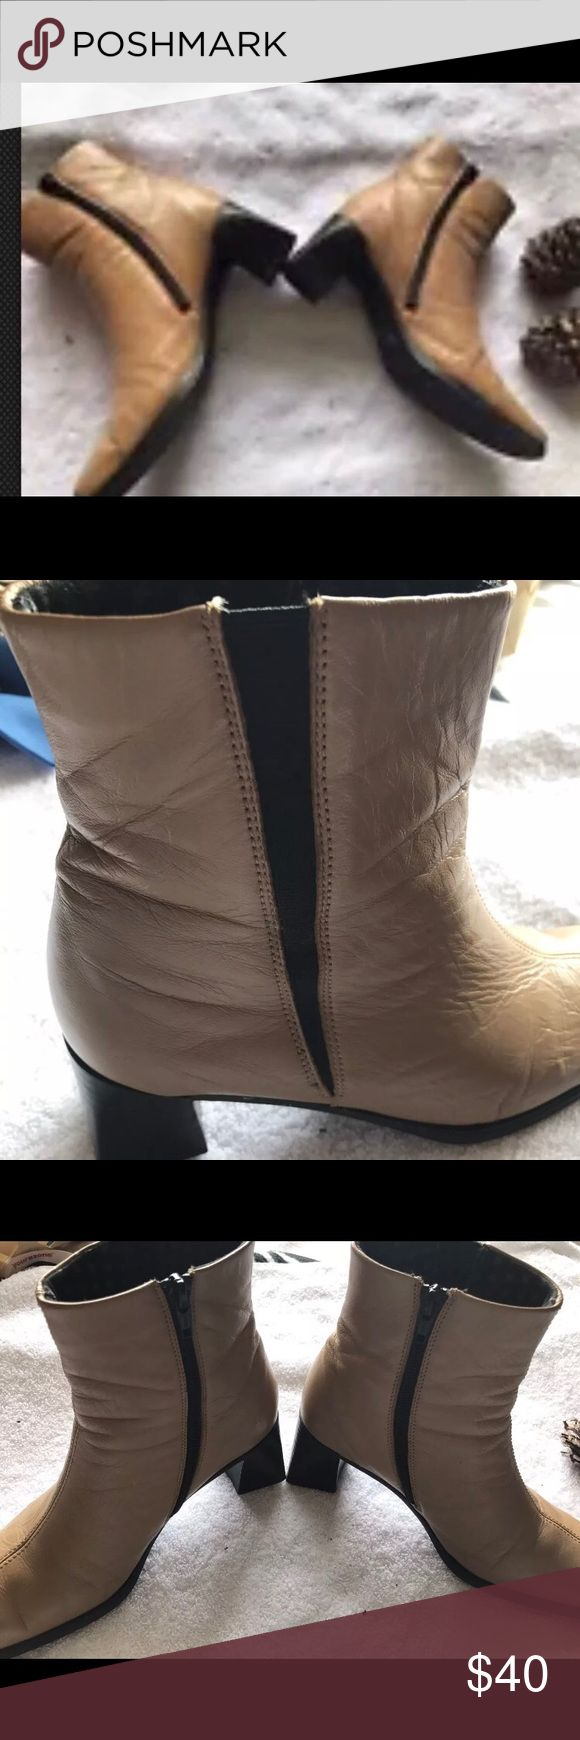 Rieker Salamander Tan Leather Ankle Boots 37 Used. Sz 37 / 7 American size. Great condition . See pictures for details . Heel is 2' in. Feel free to ask any questions I will reply same day. Ships same day . Smoke and pet free home.  Will reply within 24 hours. Rieker Shoes Ankle Boots & Booties